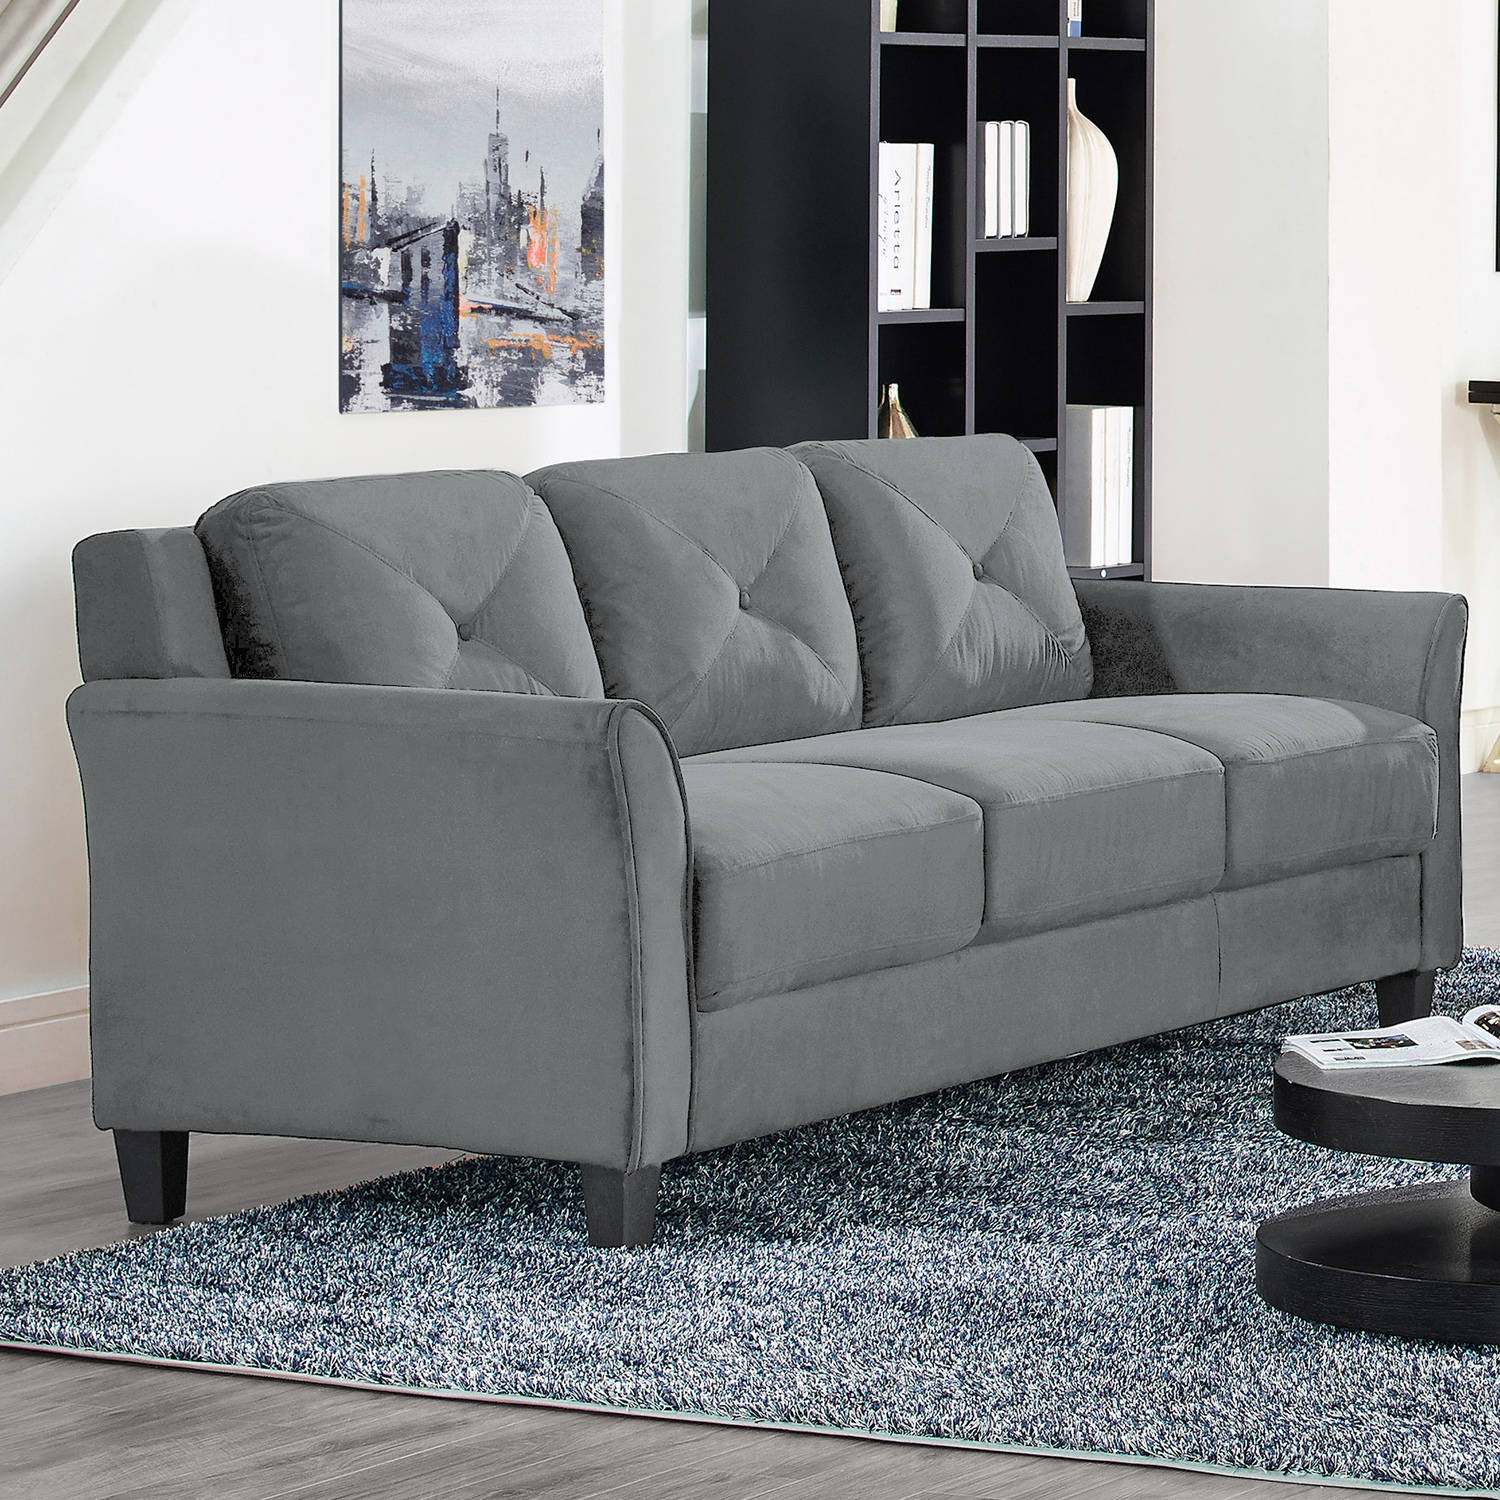 Details About Ireland Sofa Dark Grey Fabric Durable Upholstery Living Room Furniture Seating